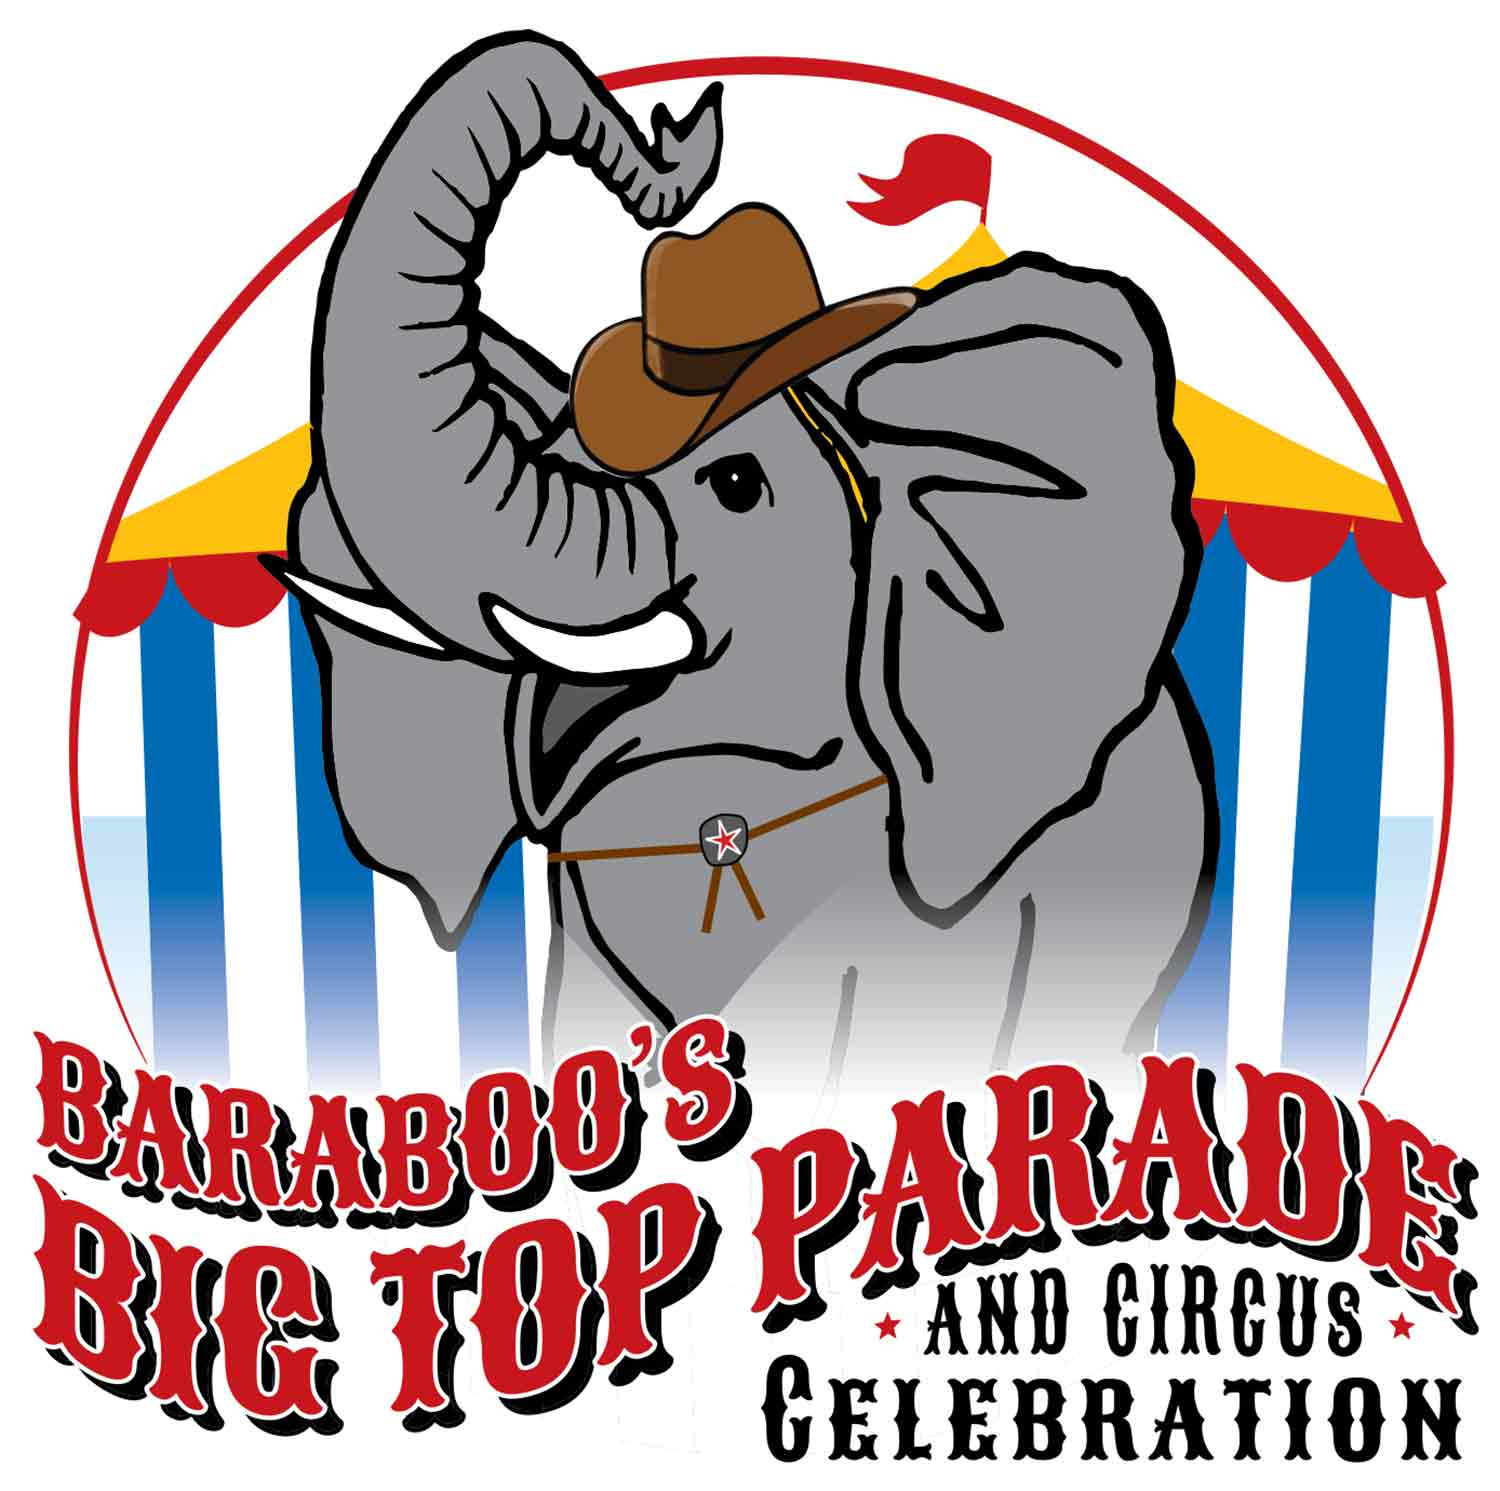 Baraboo Circus World Big Top Parade elephant